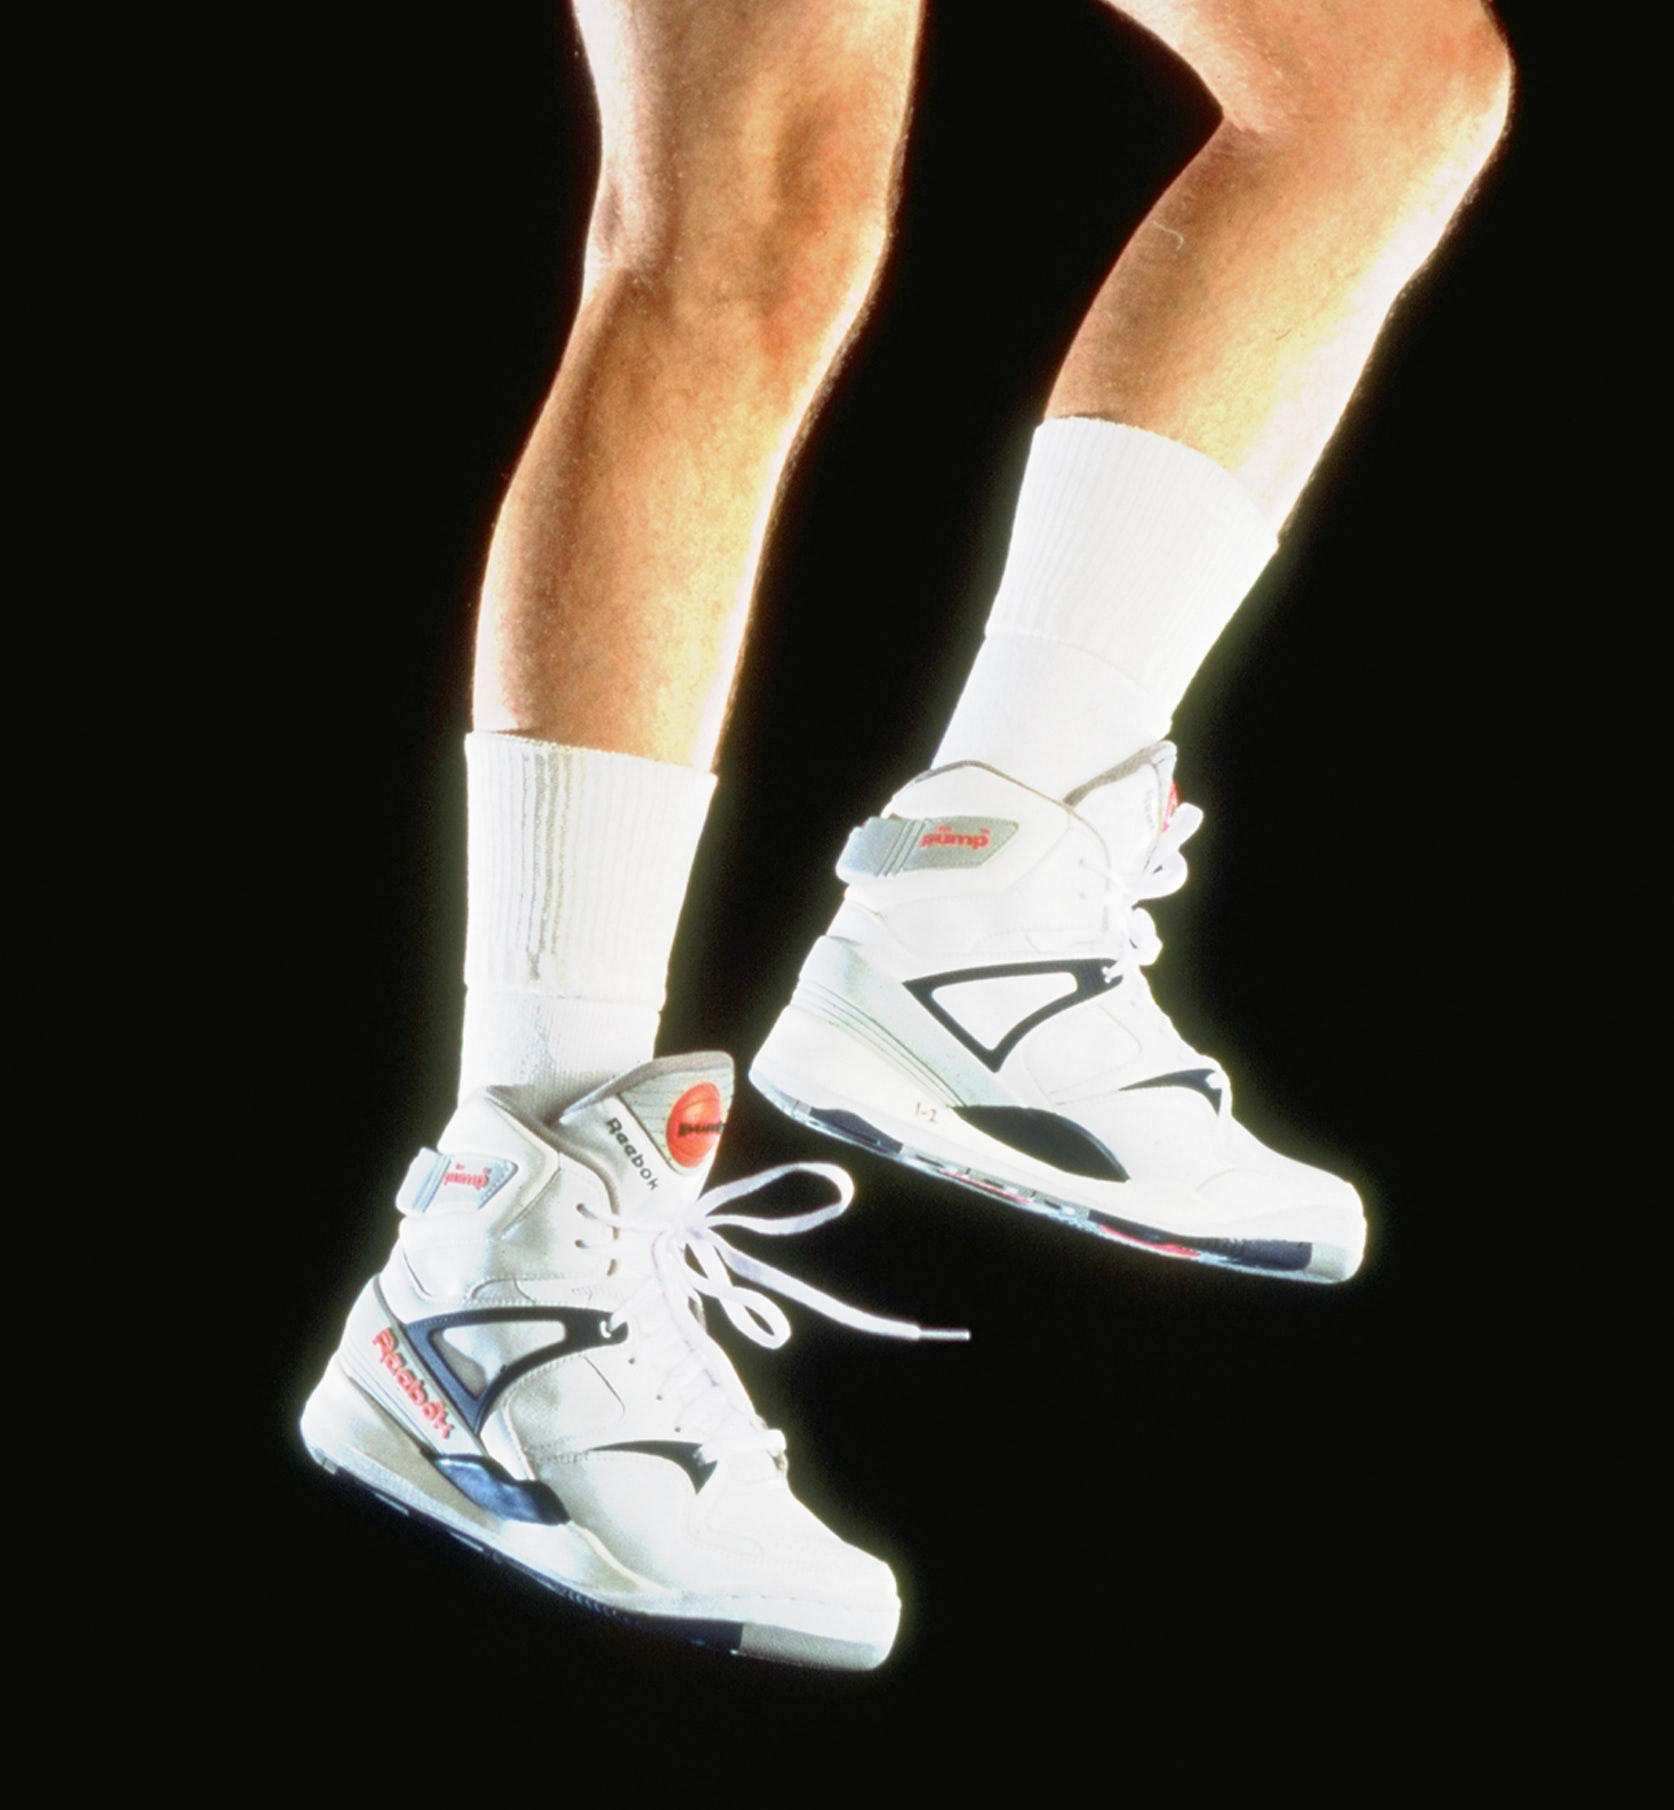 Top 20 Reebok Sneakers of All Time